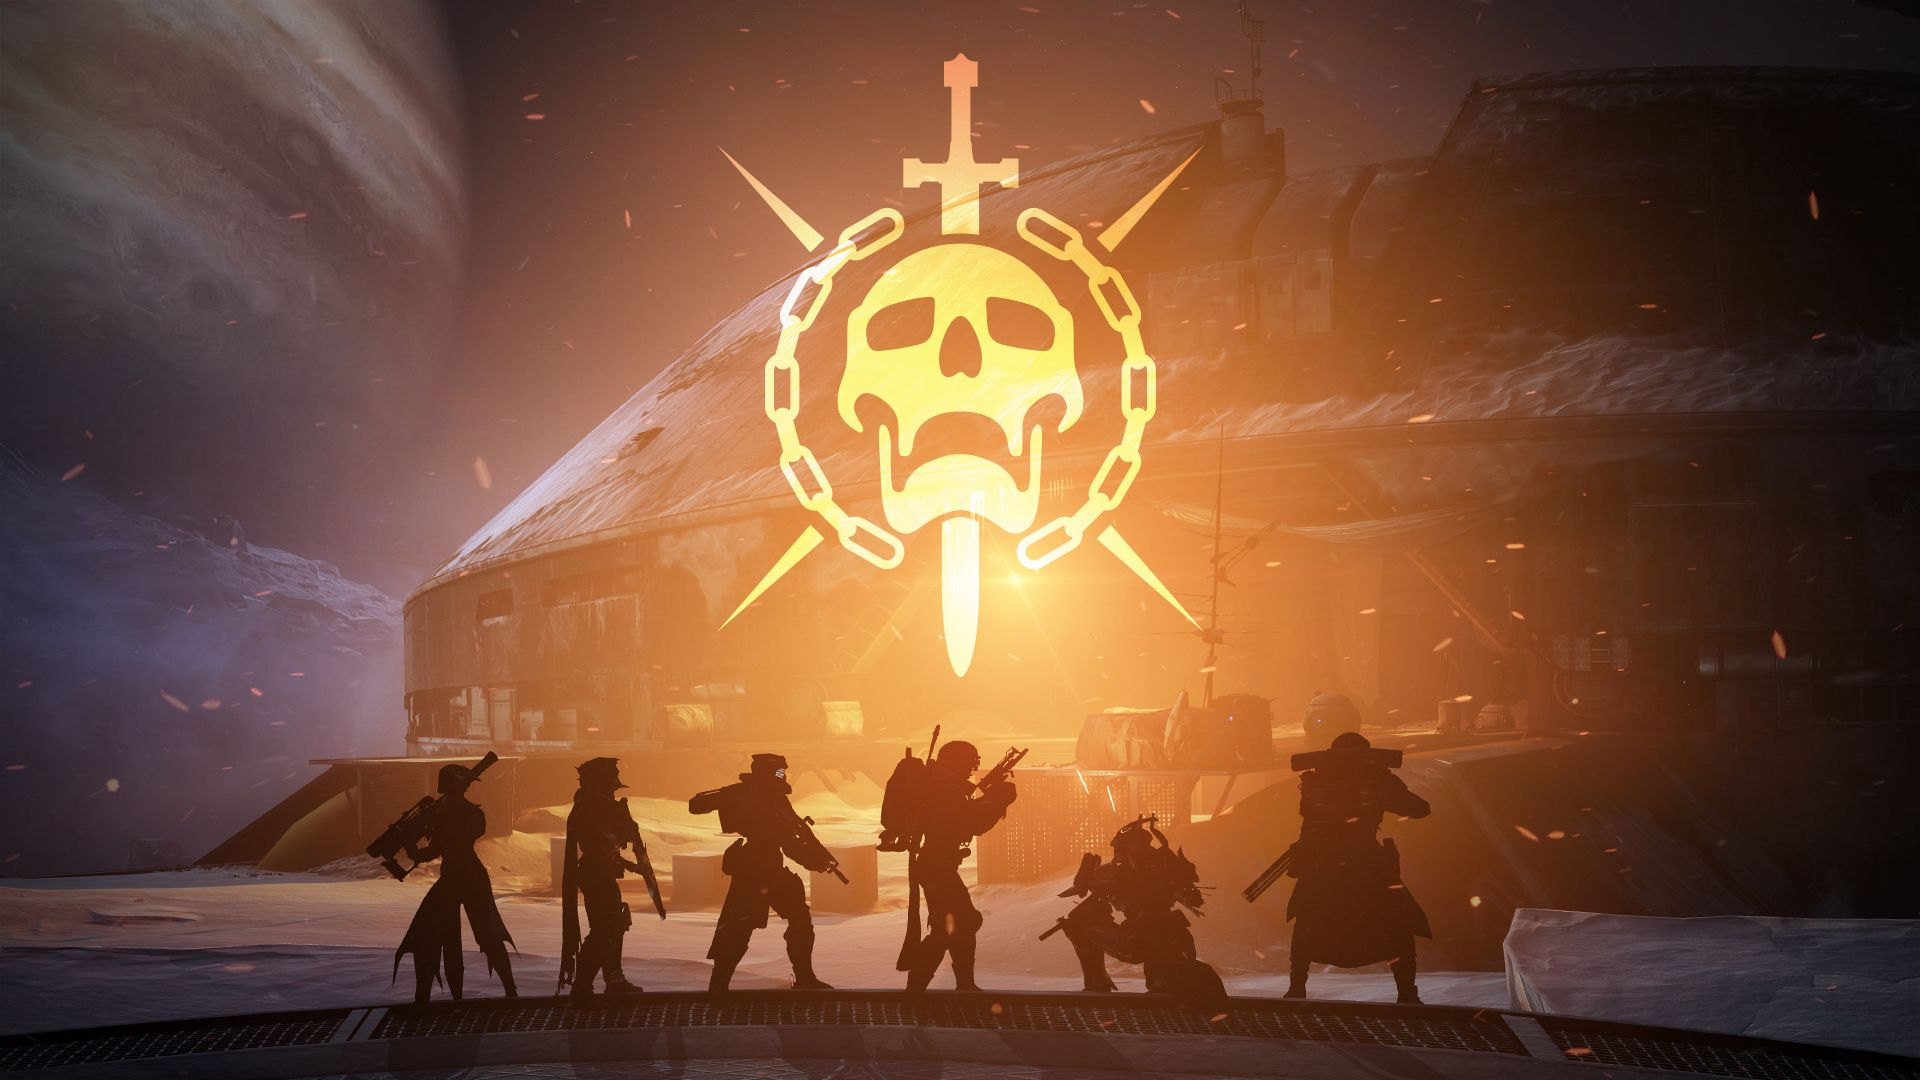 Destiny 2 players are glitching into raids with double the amount of players